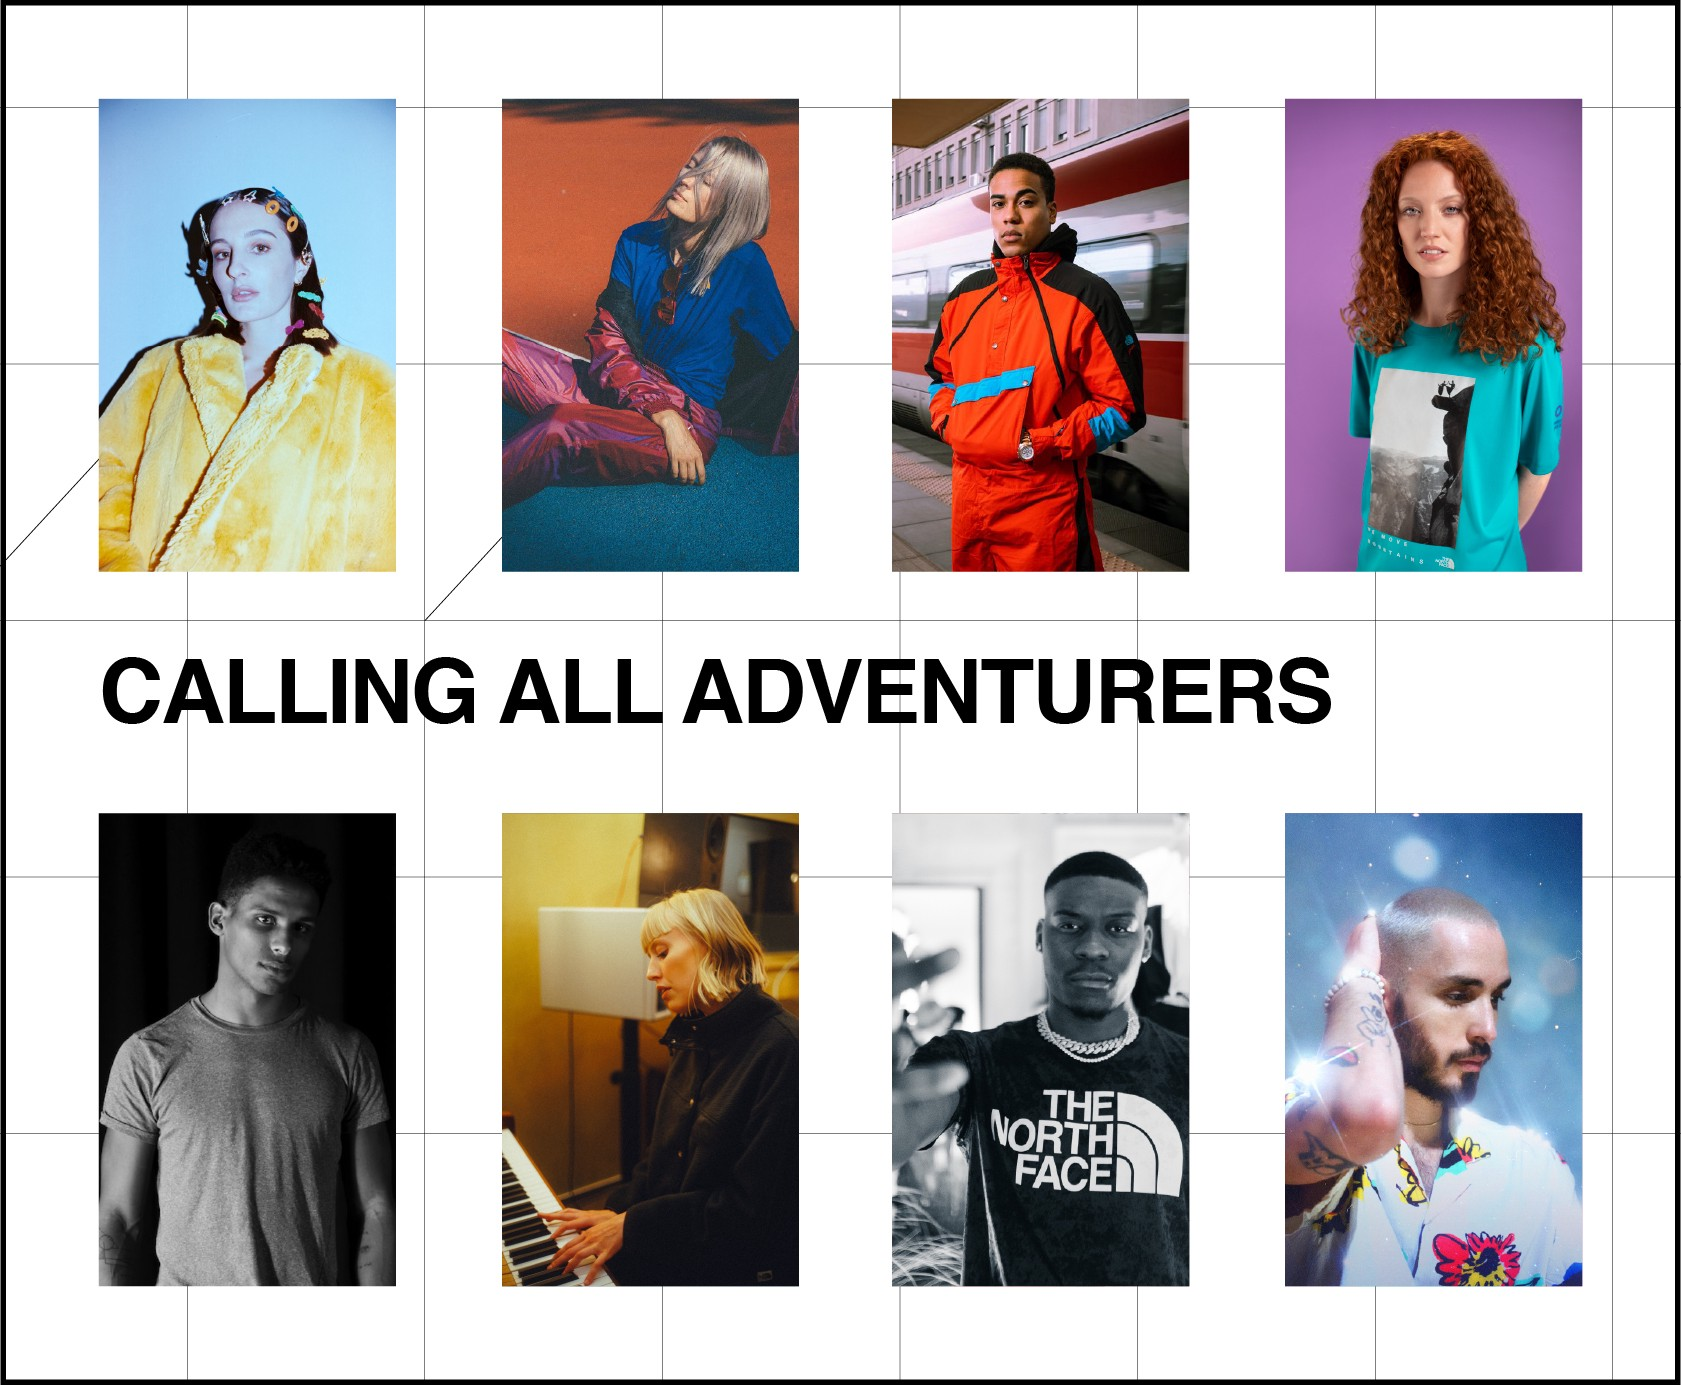 The North Face redefines Influencer Marketing